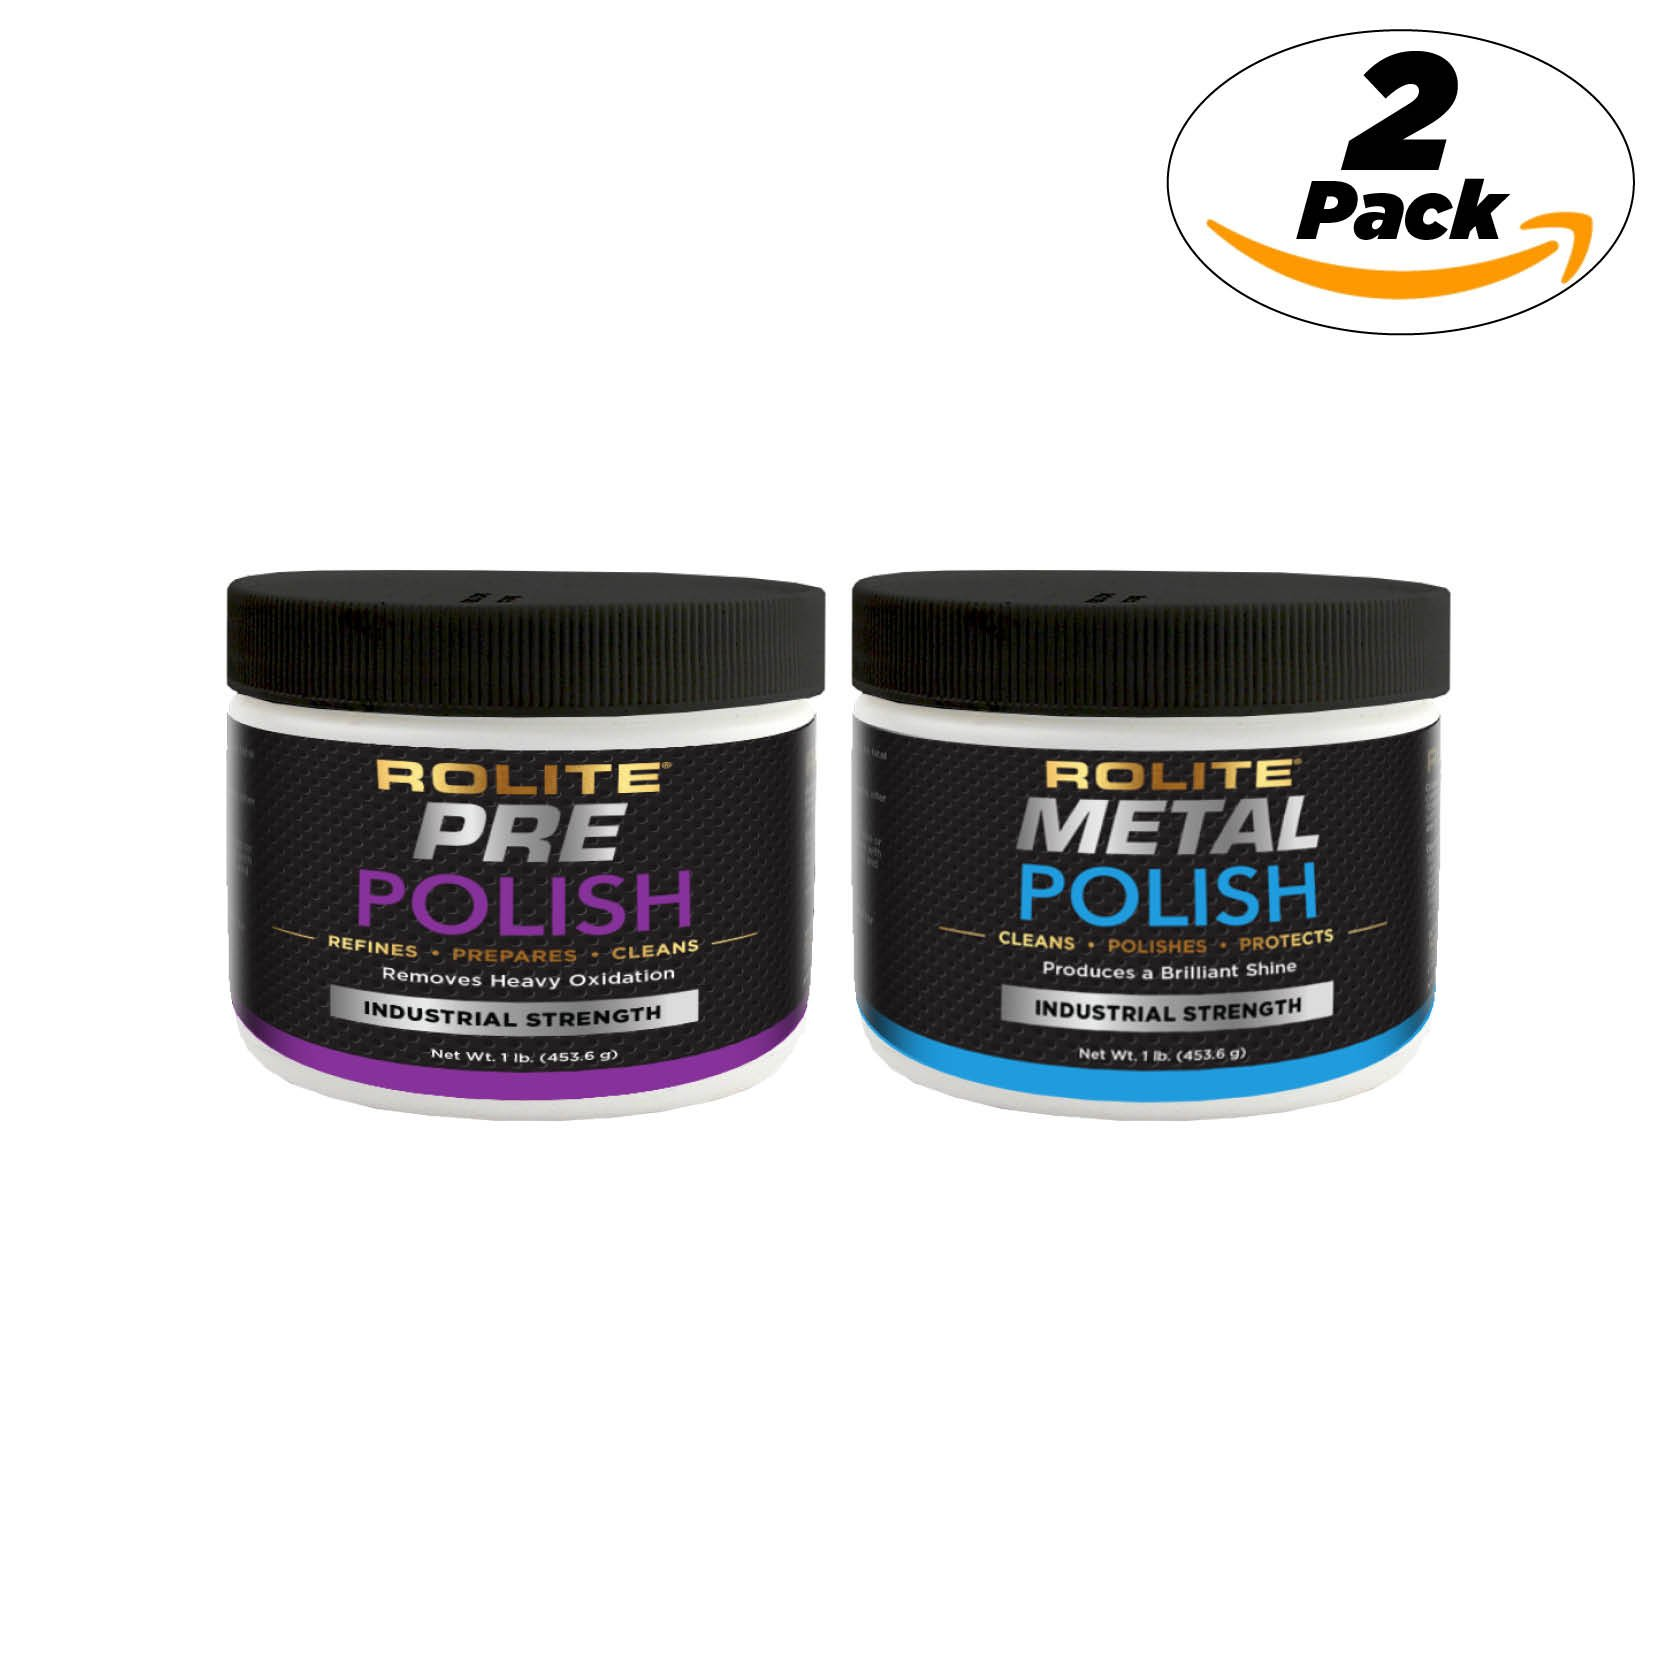 Rolite Pre Polish & Metal Polish (1lb) for The Ultimate Restorative Shine on All Metal Surfaces Combo Pack by Rolite (Image #1)